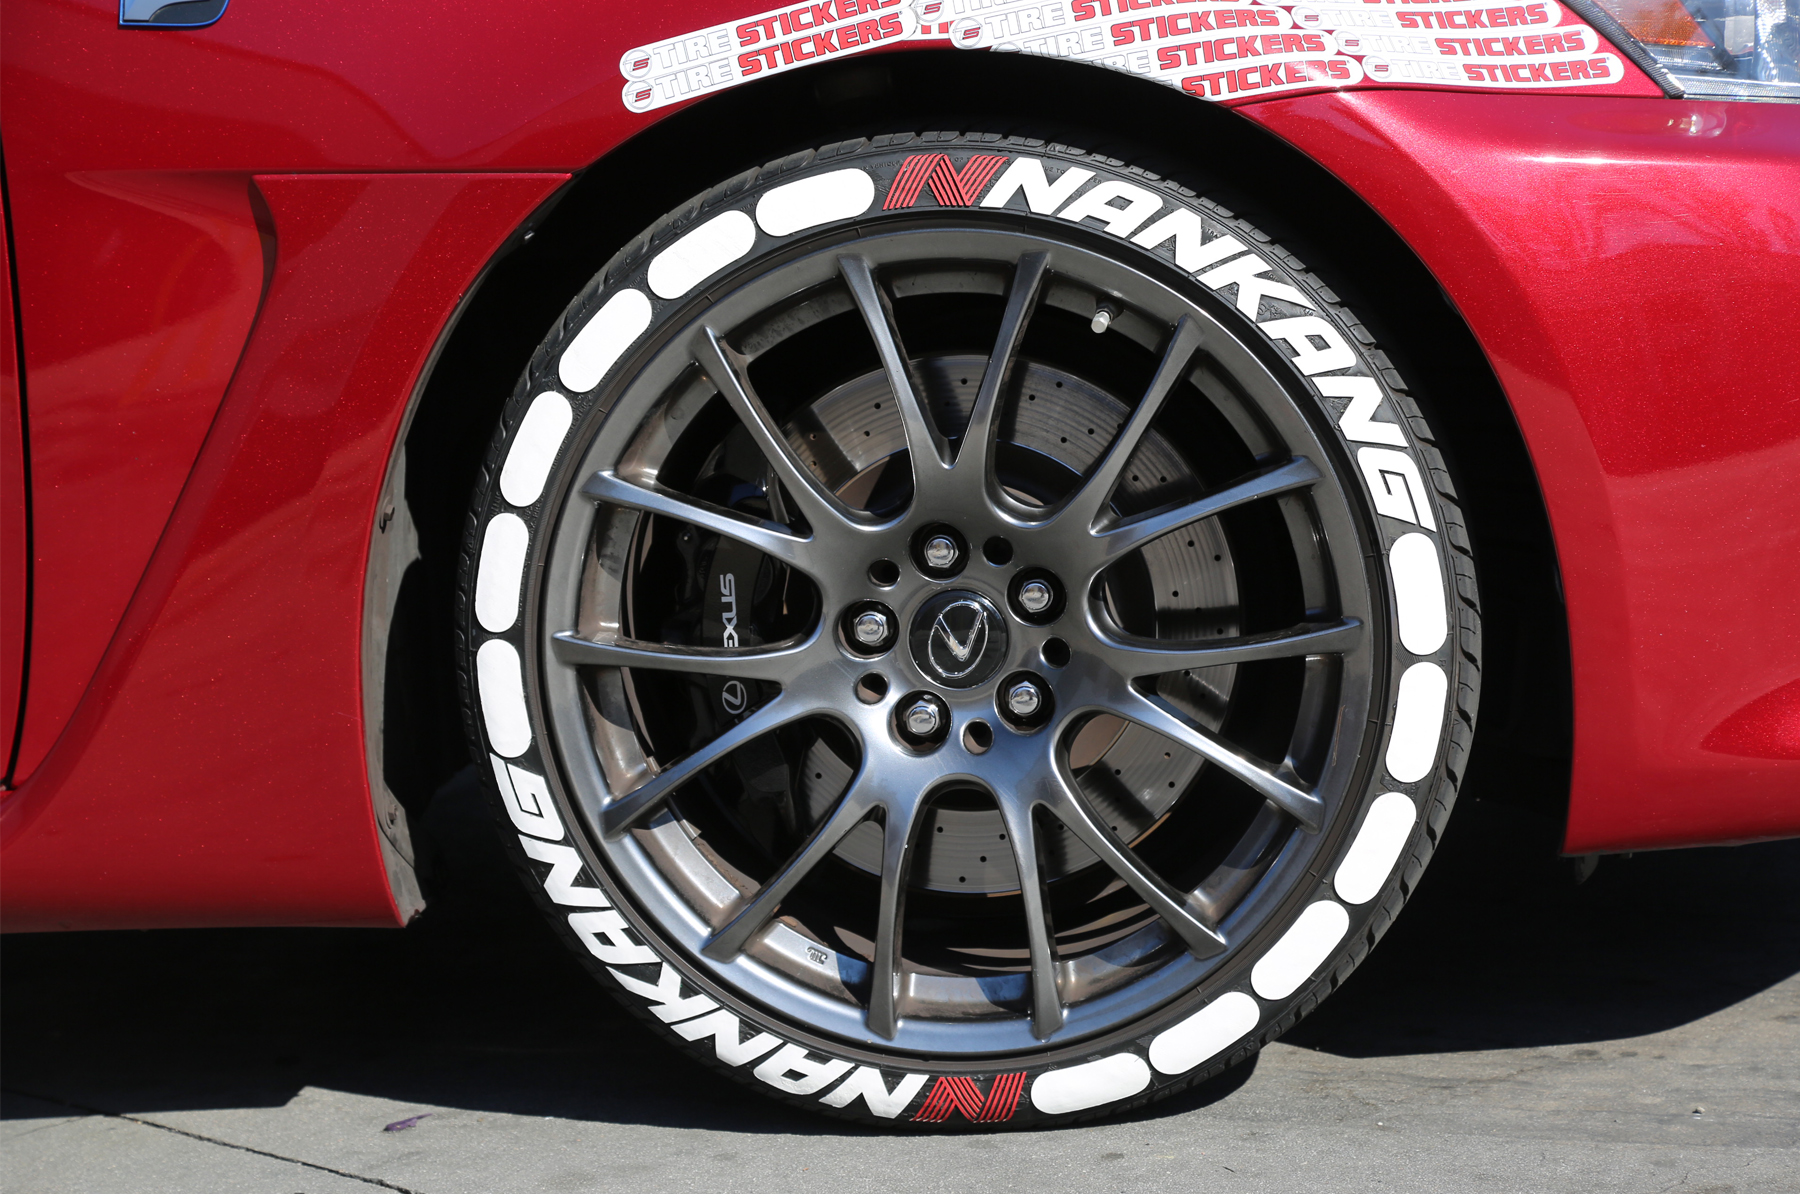 lexus ISF nankang tires - tire stickers - white 4 | TIRE ...